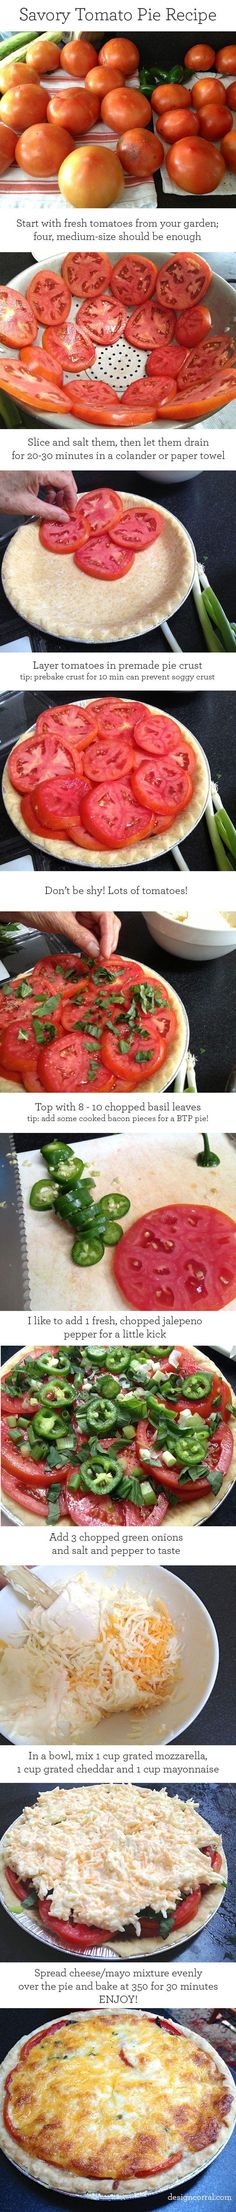 Savory Tomato Pie Recipe Little different than Paula Dean's.